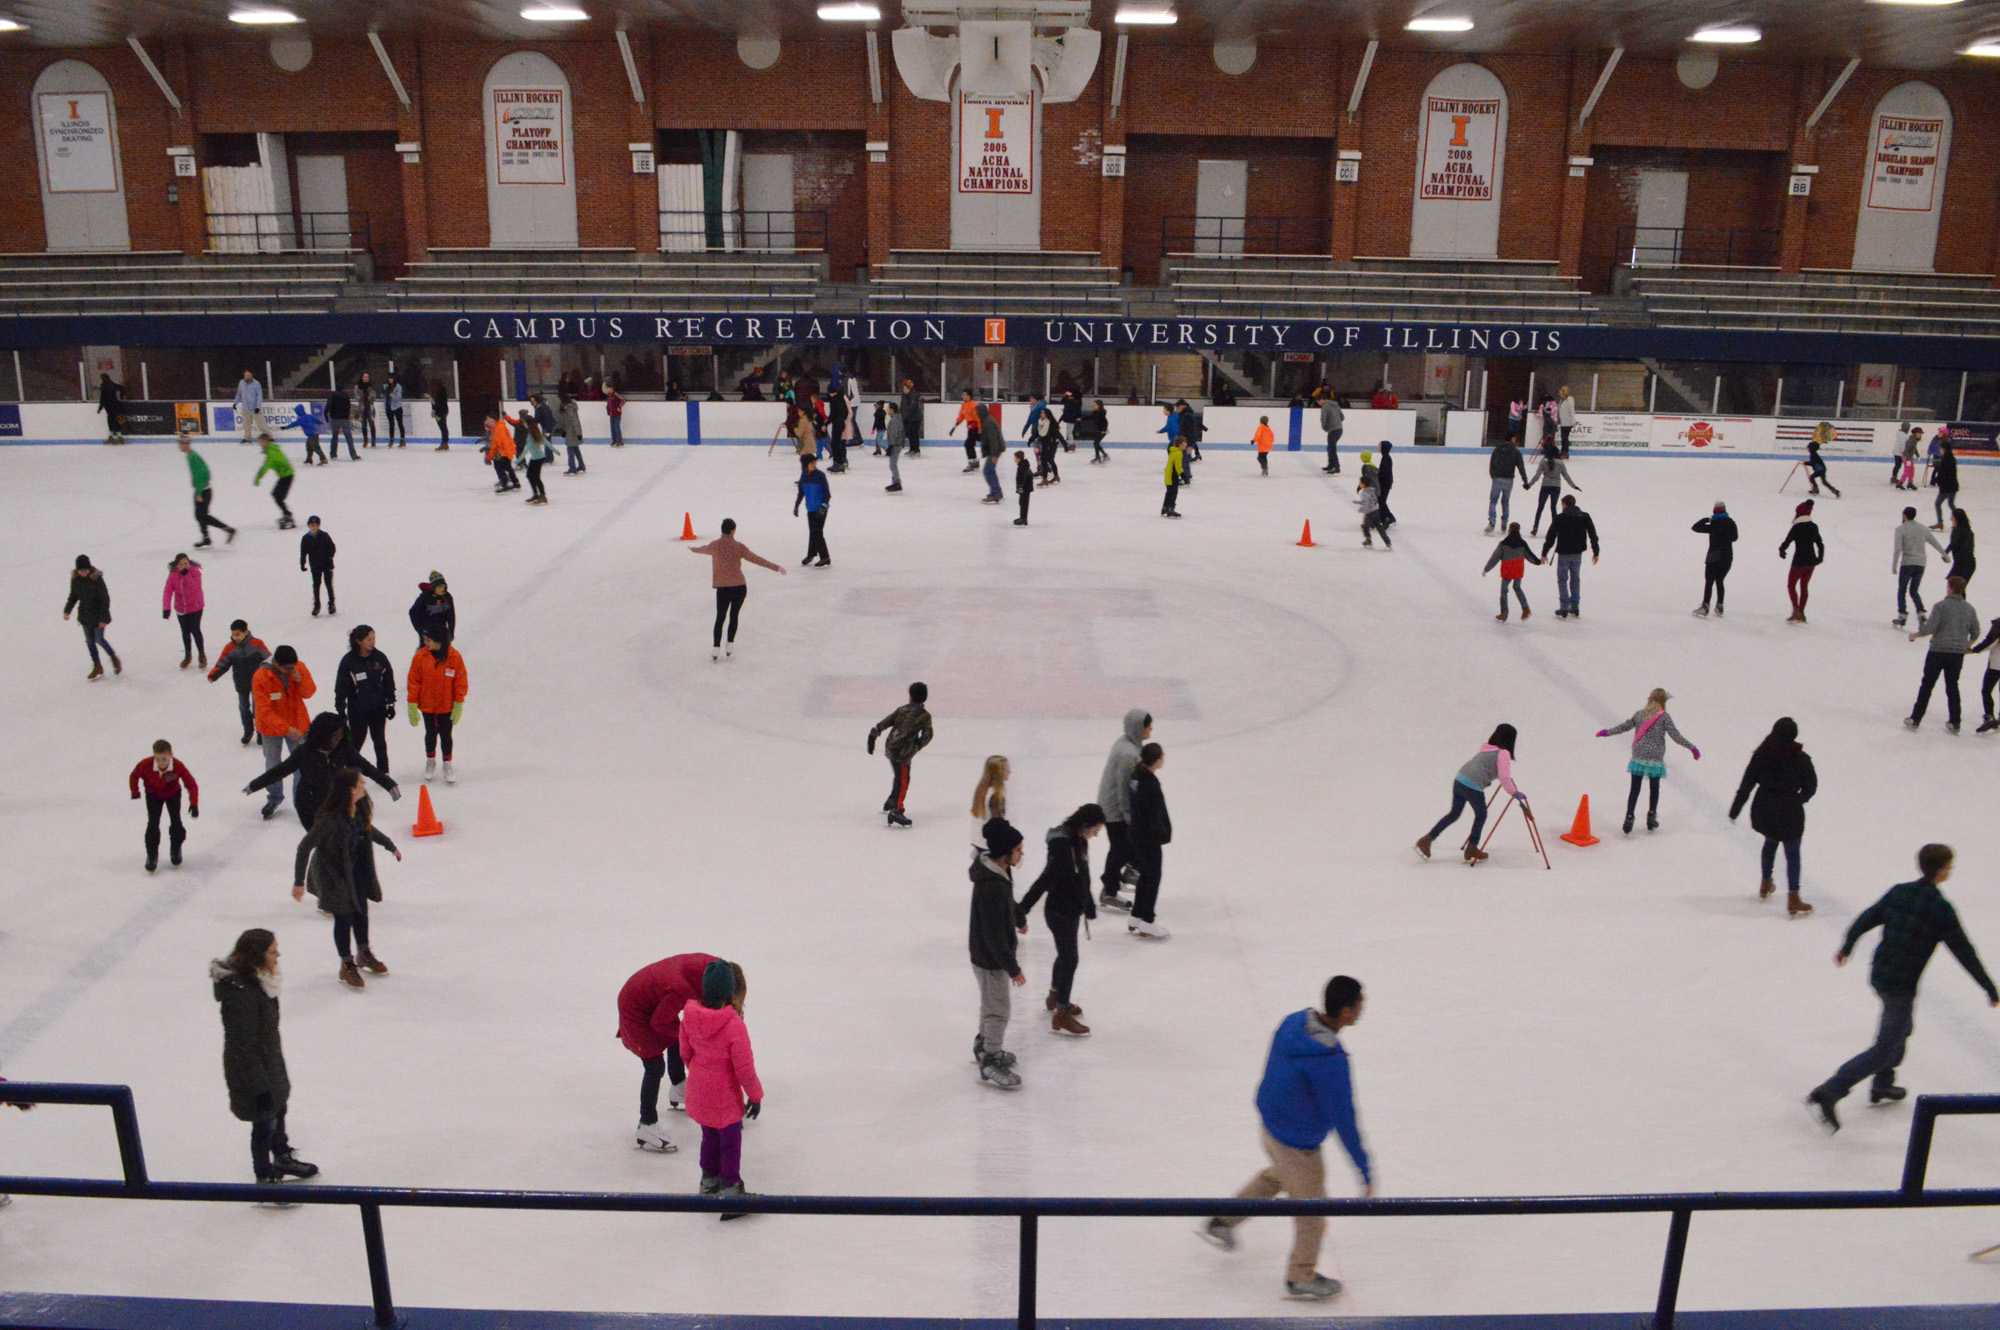 Many spend their Martin Luther King Jr. Day at the ice skating rink on Jan. 18, 2016.